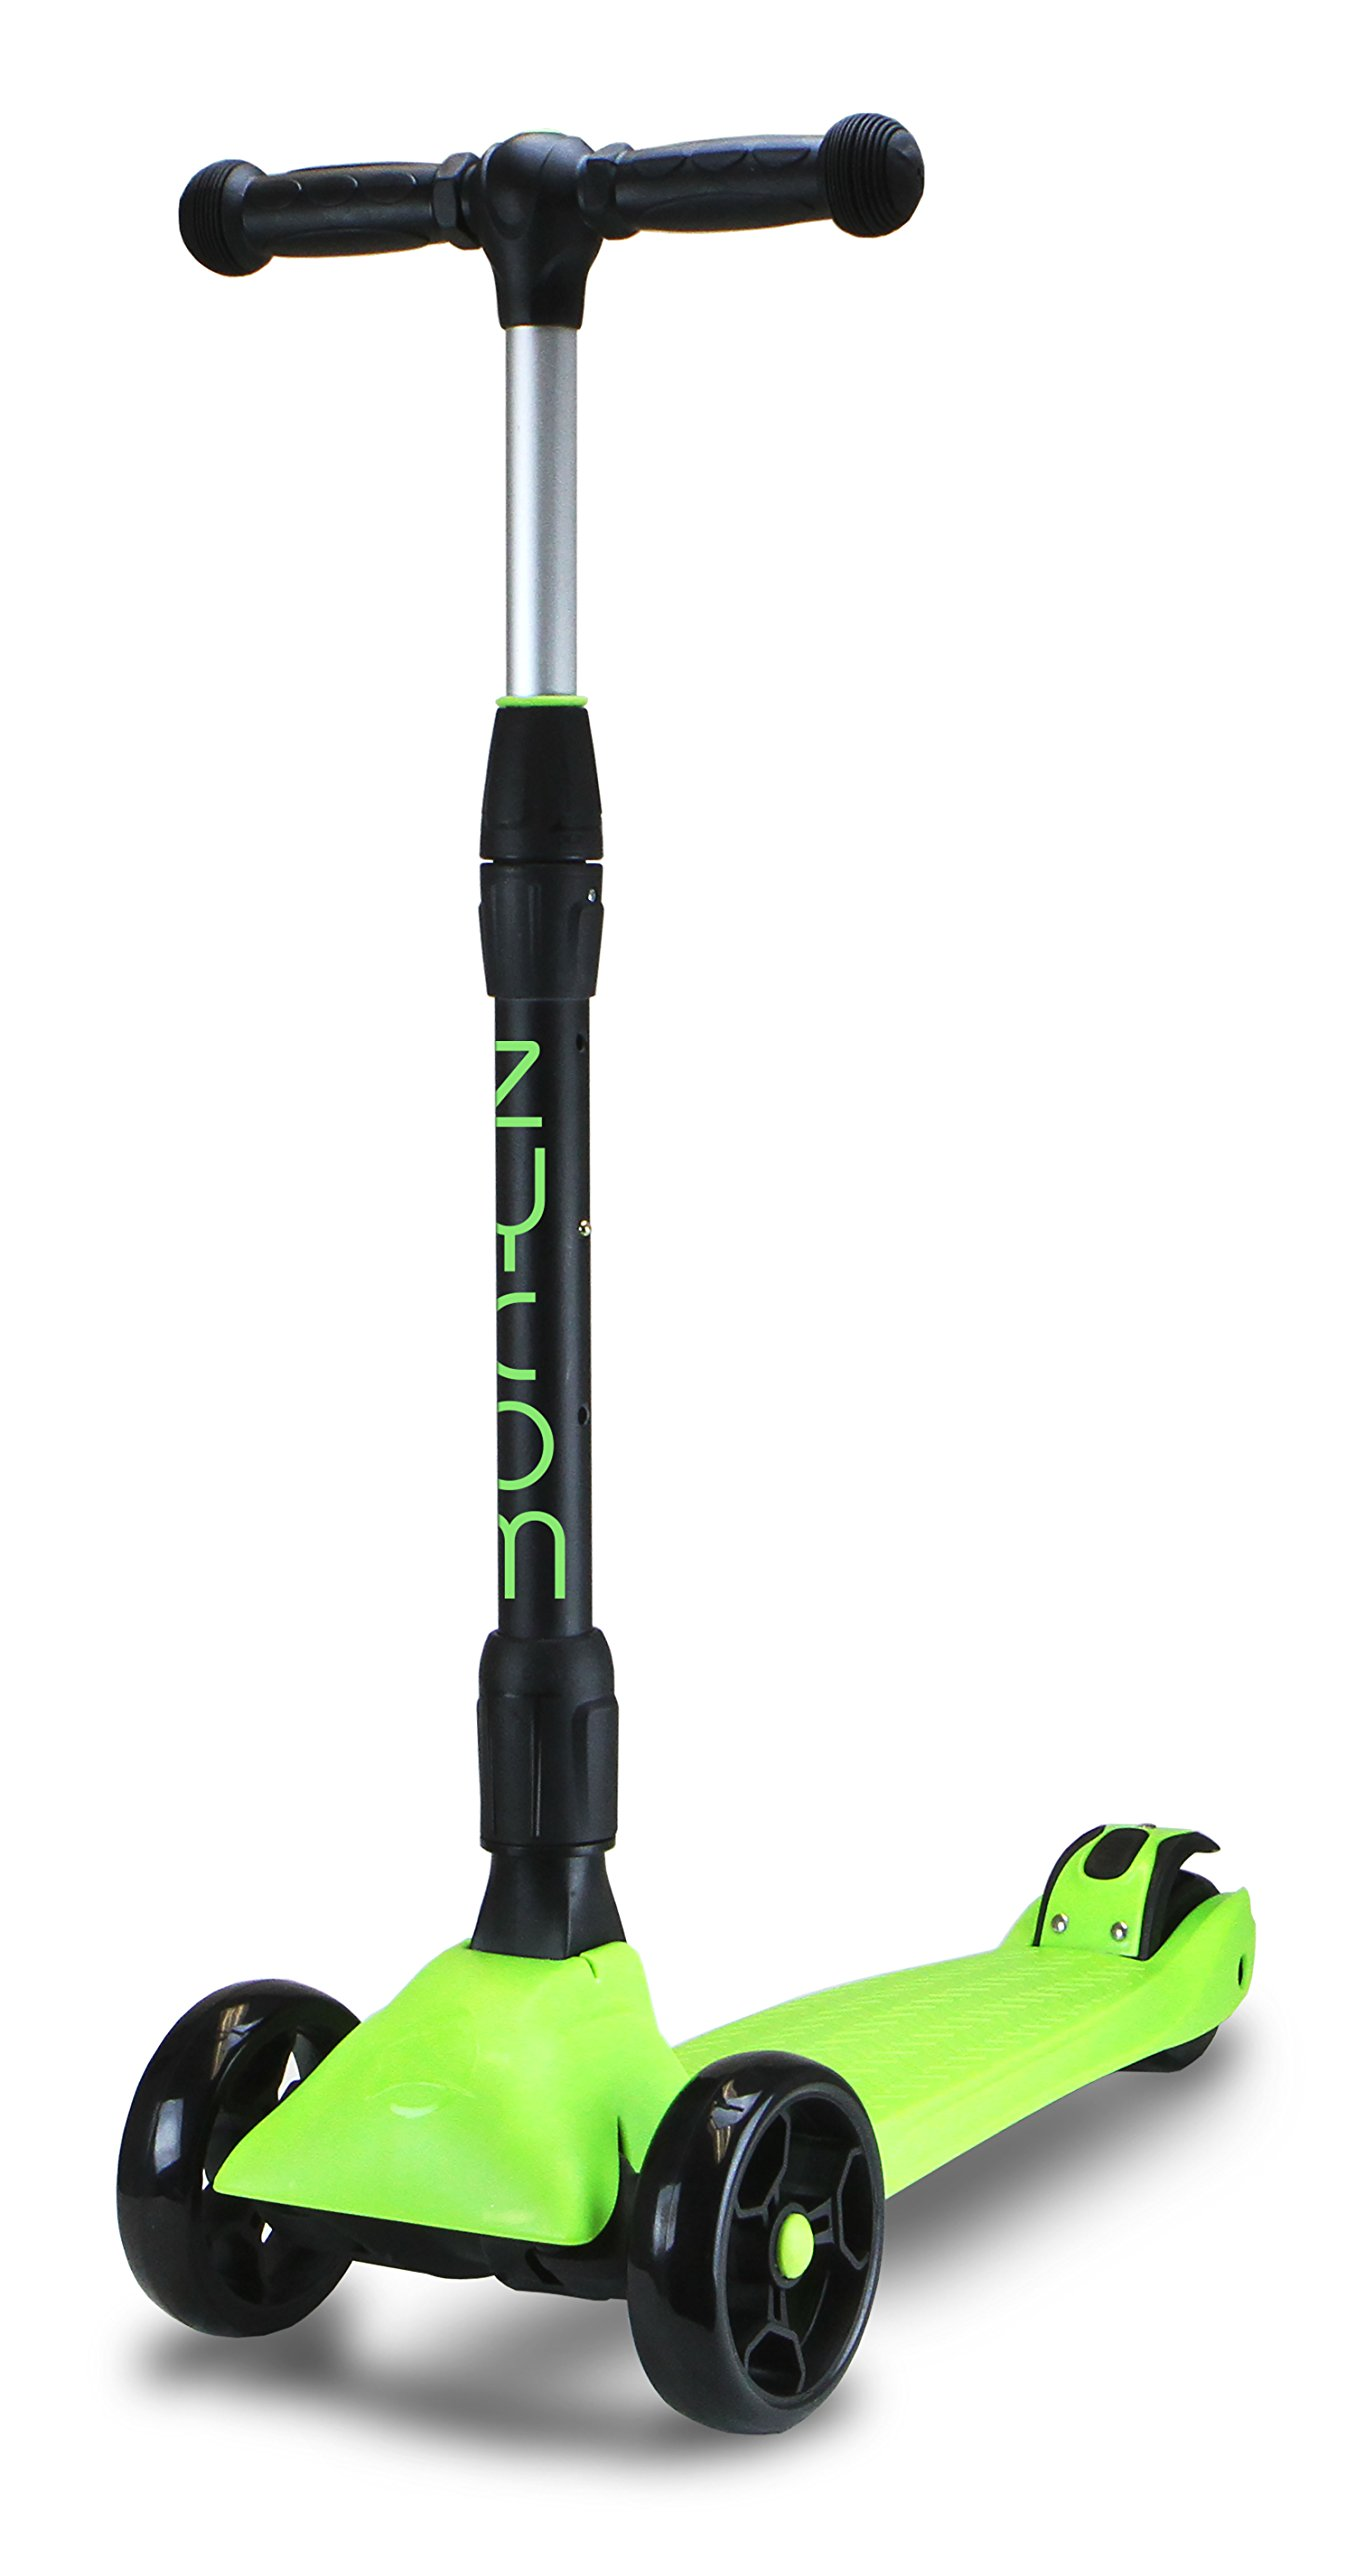 Zycom Zinger 3 Wheel Scooter, Black/Lime Green